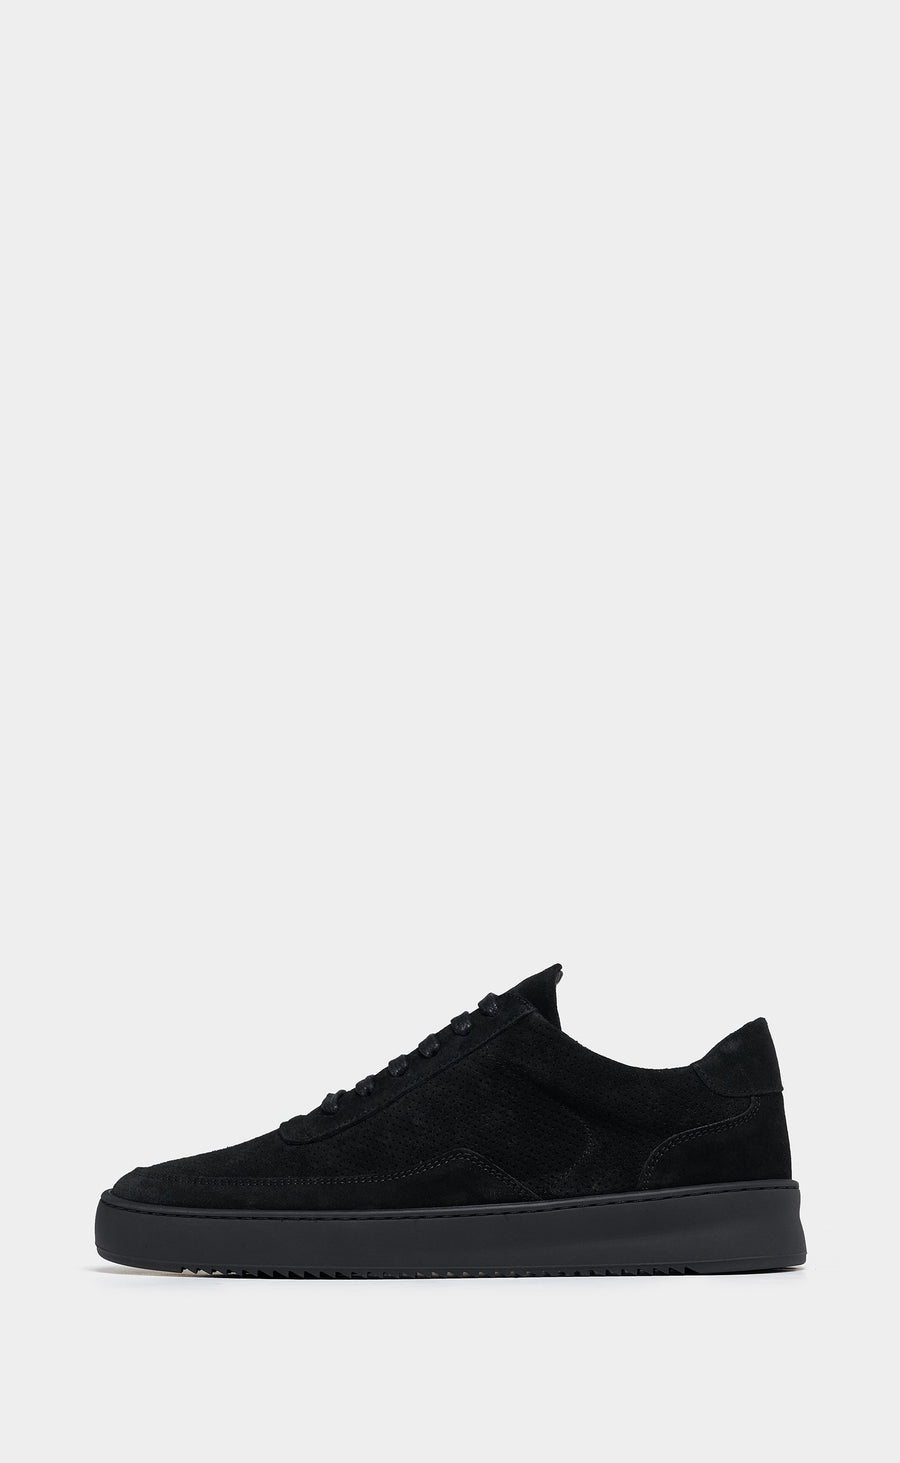 Low Mondo Ripple Suede Perforated All Black - men